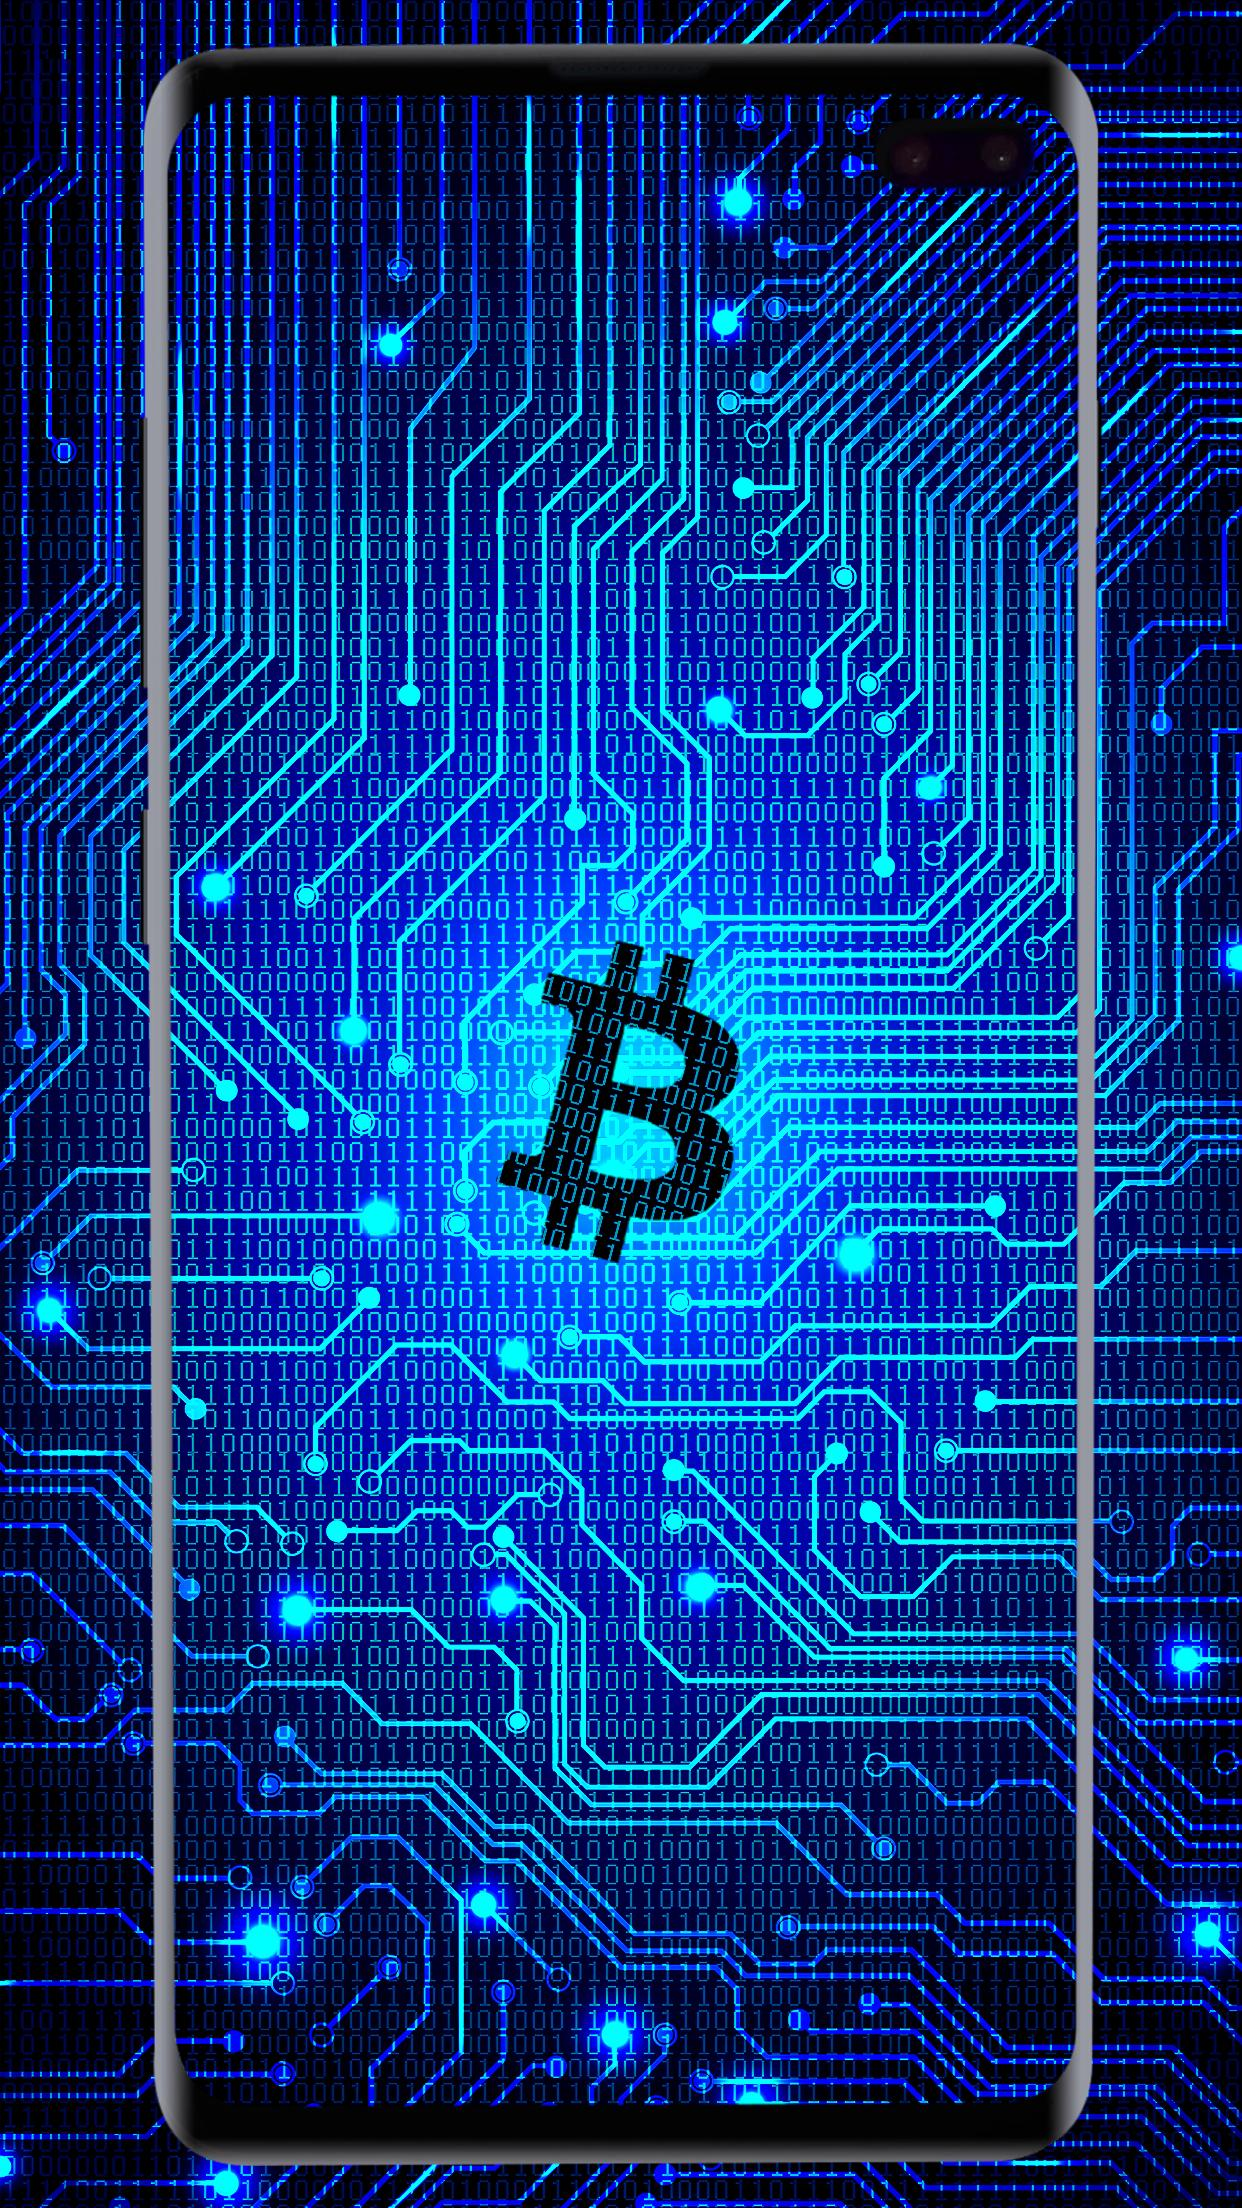 Bitcoin Wallpaper 4k Posted By Samantha Simpson